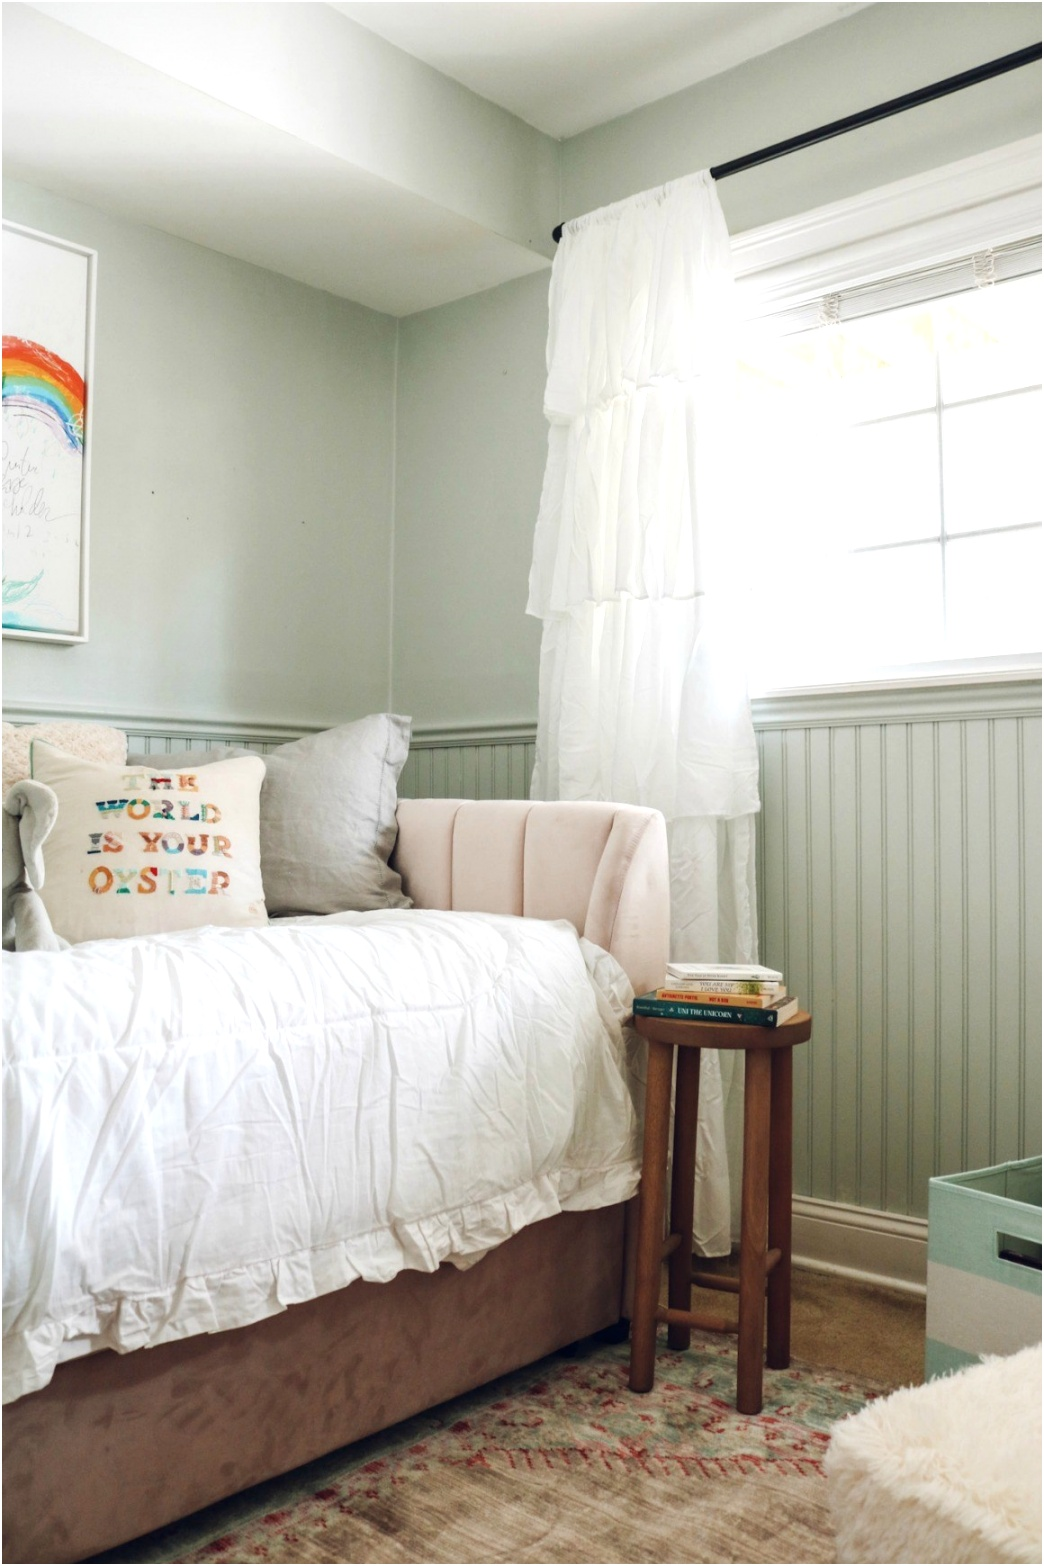 5 year to 16 year old girl bedroom makeover